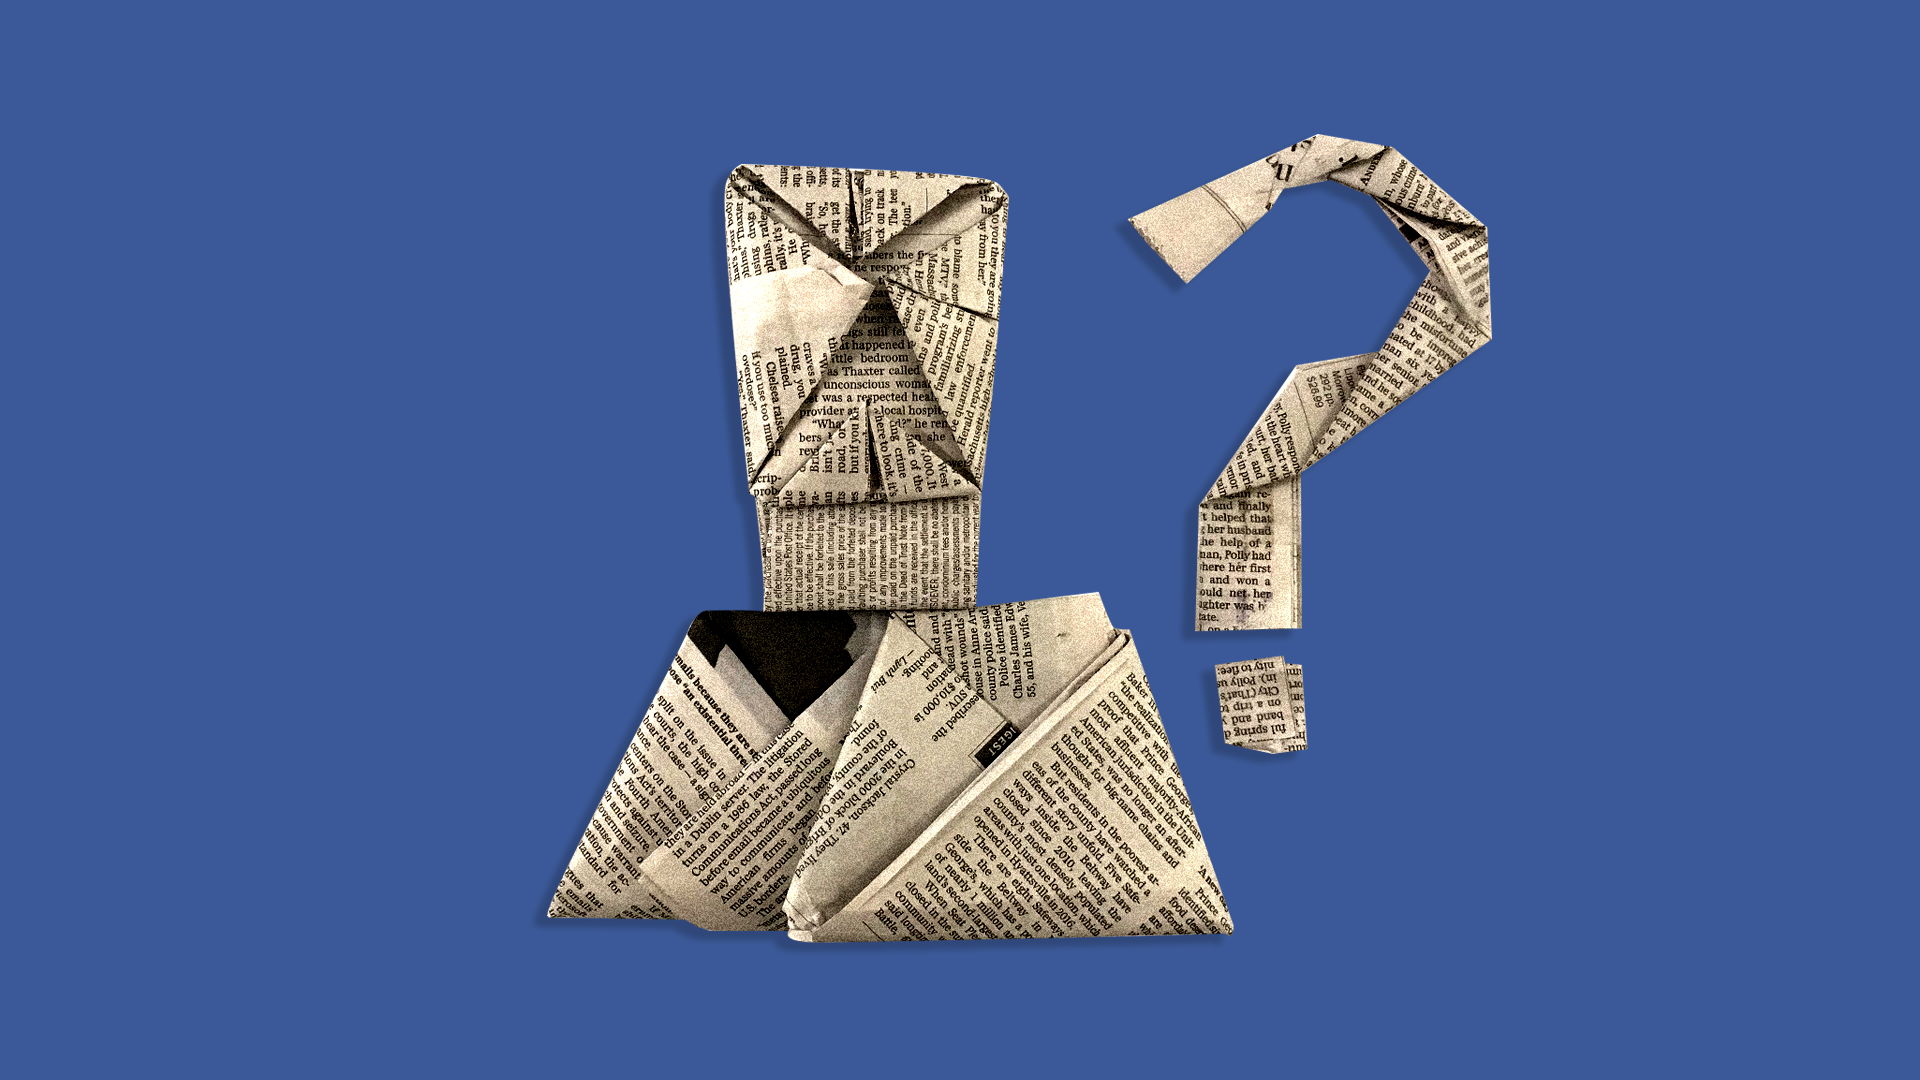 An illustration of a newspaper in a question mark shape against a Facebook blue background